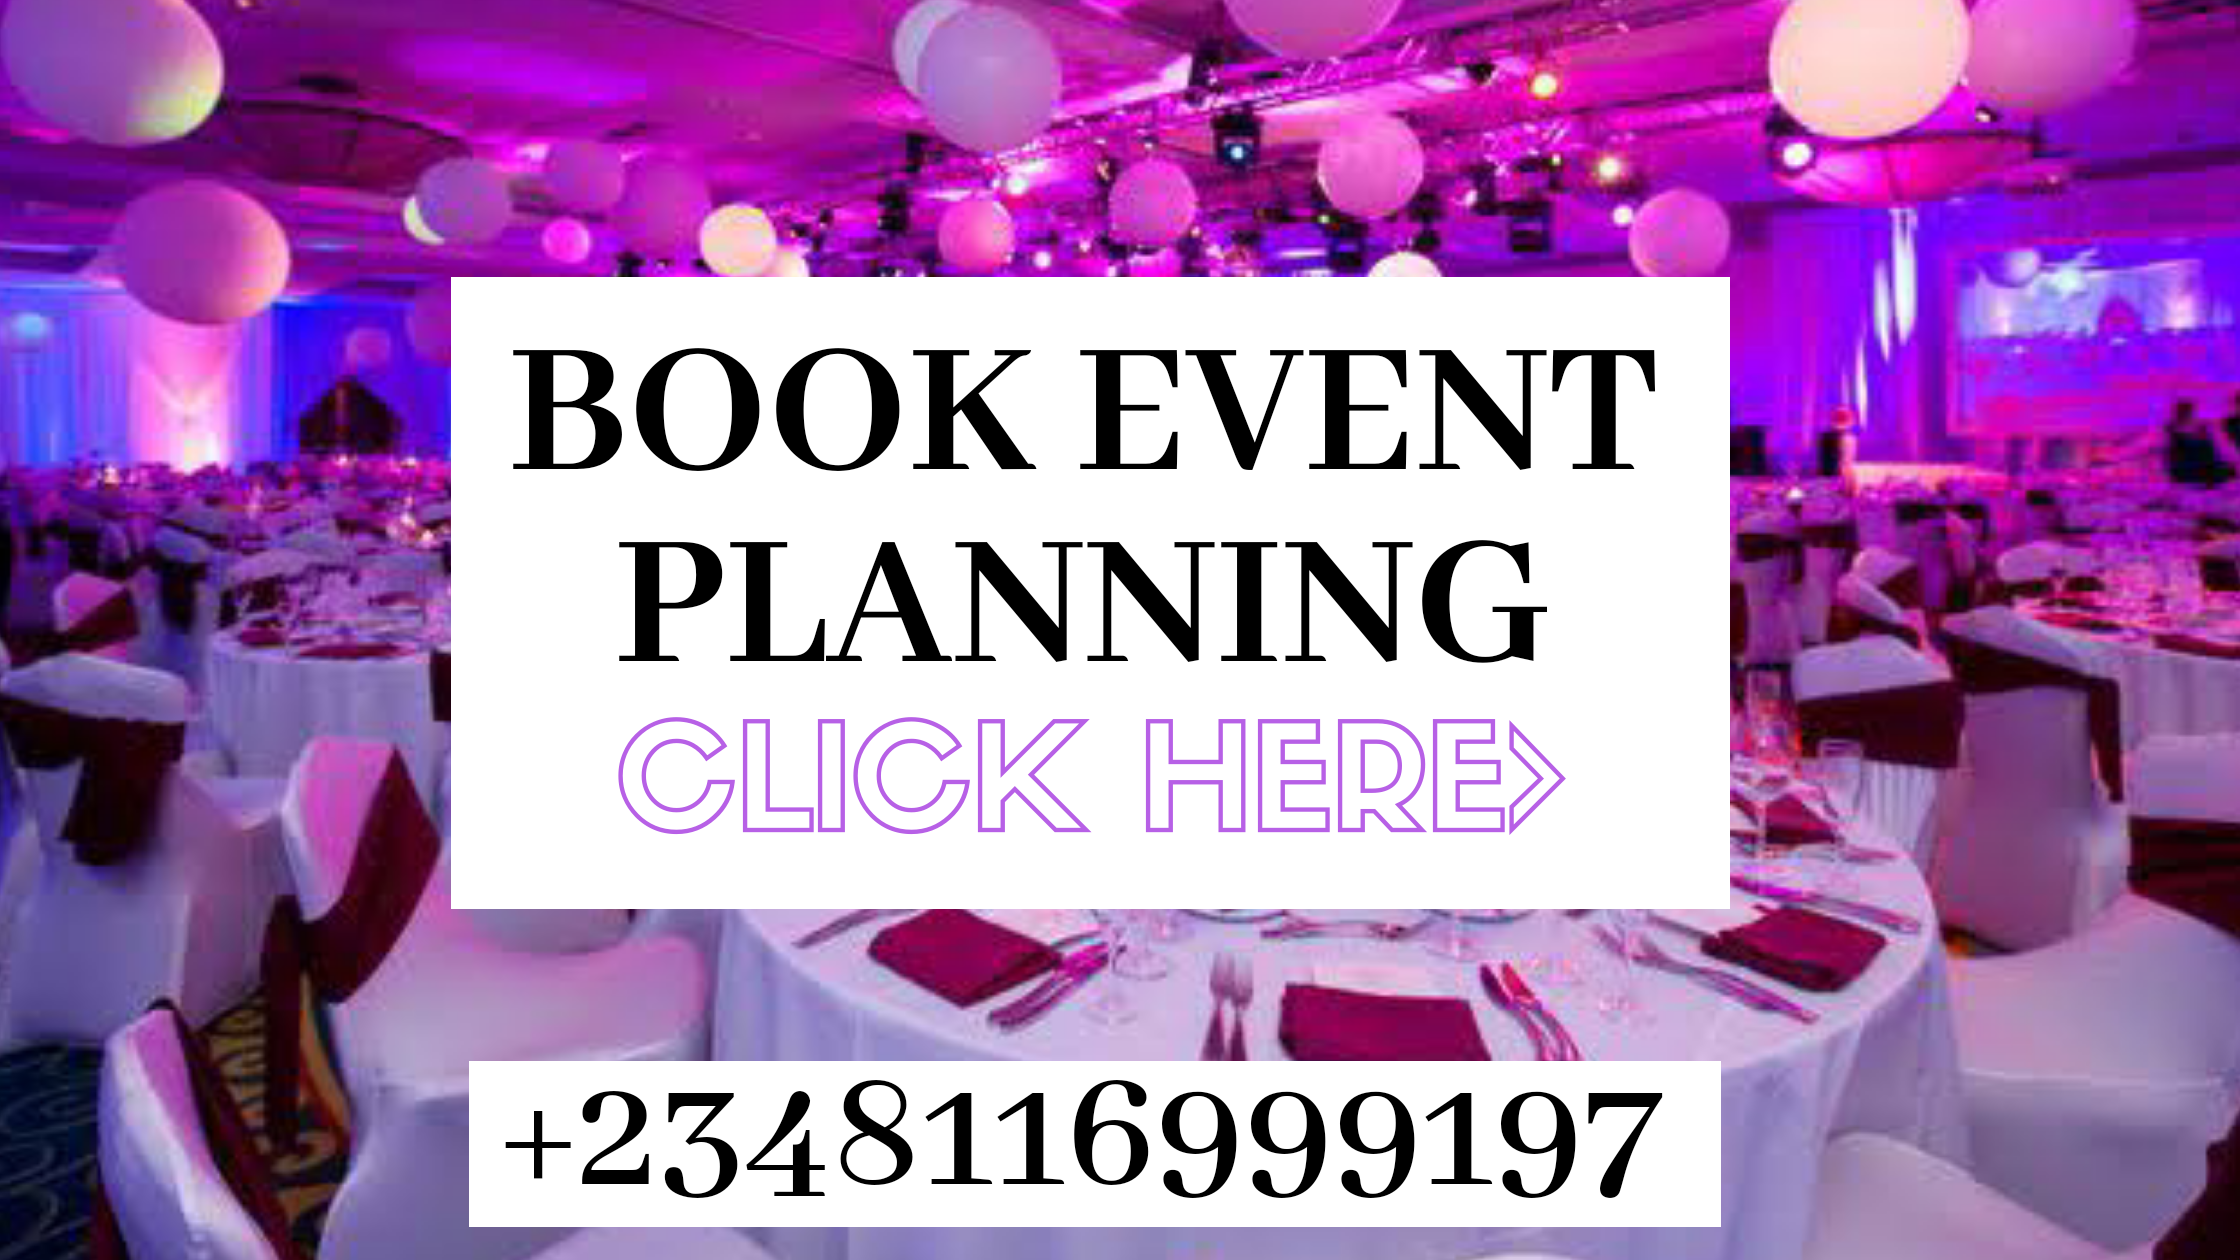 Are You Planning An Event? We Are Here To Help You. Talk To A Planner